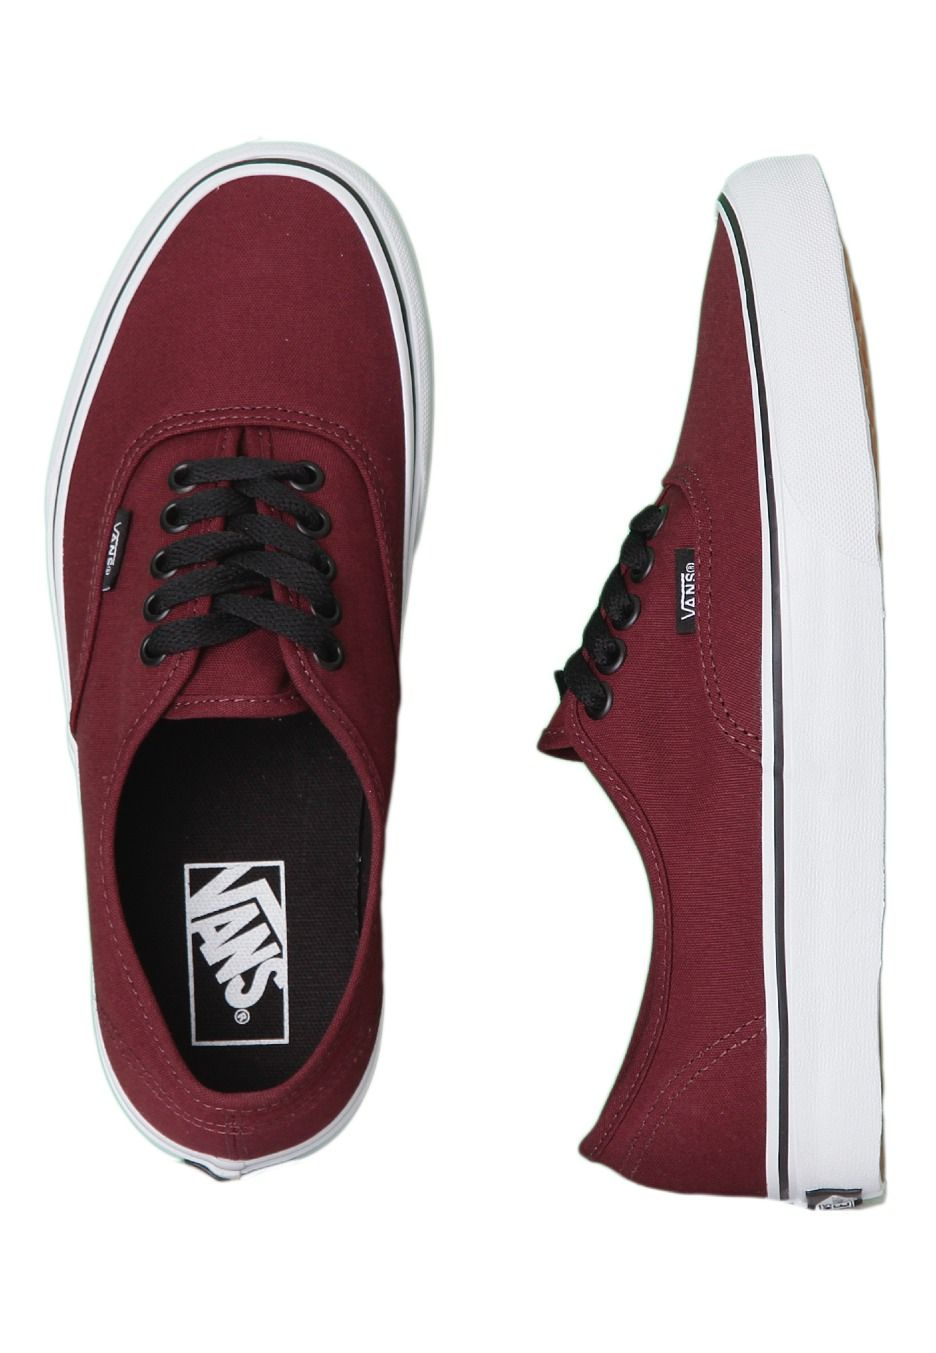 2ad6f9b280695 Vans - Authentic Port Royale Black - Damesschoenen - Official Merchandise  Online Shop - Impericon Nederland